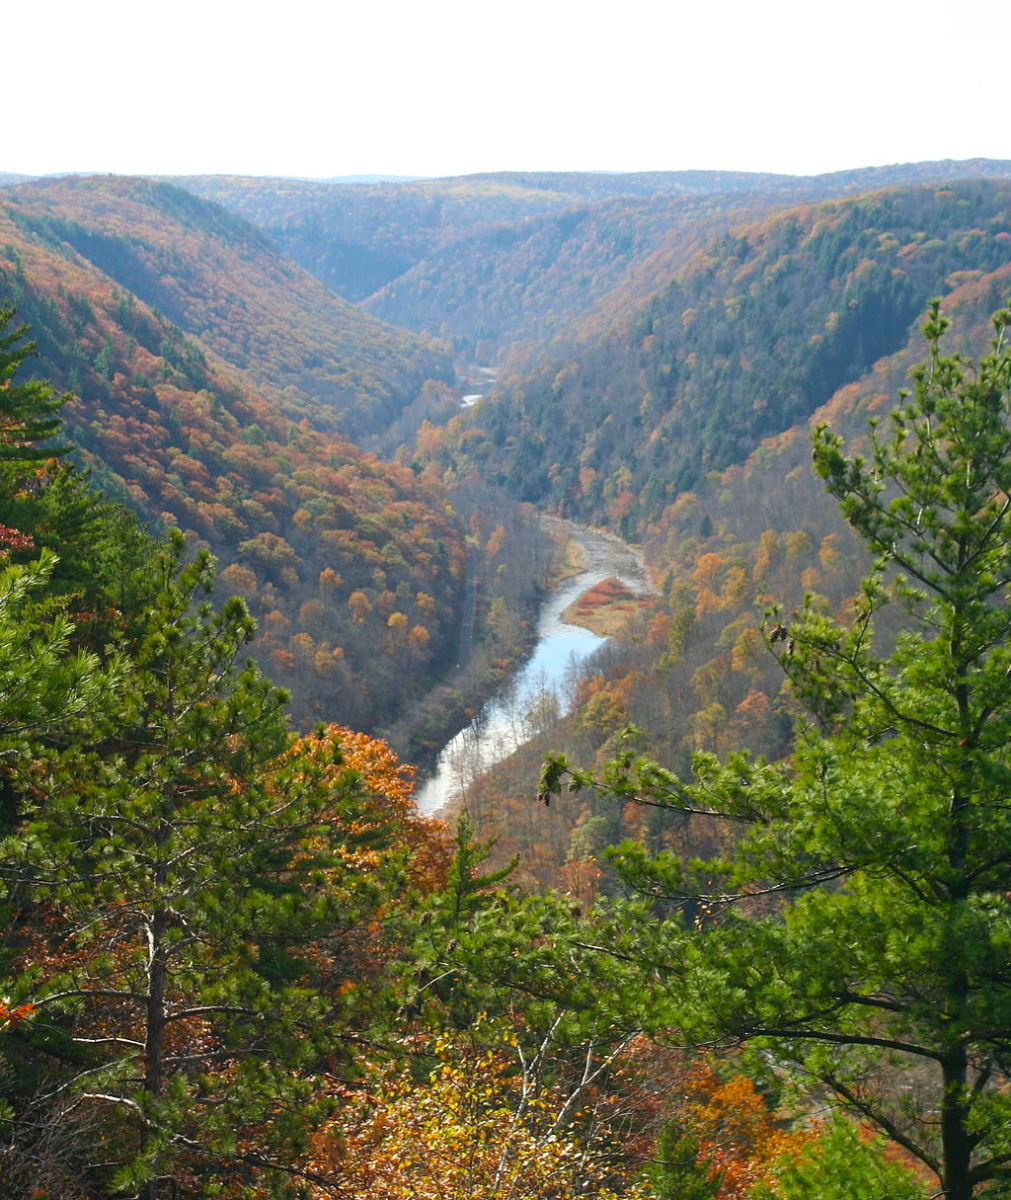 Pine Creek Gorge, the Grand Canyon of Pennsylvania, in autumn.